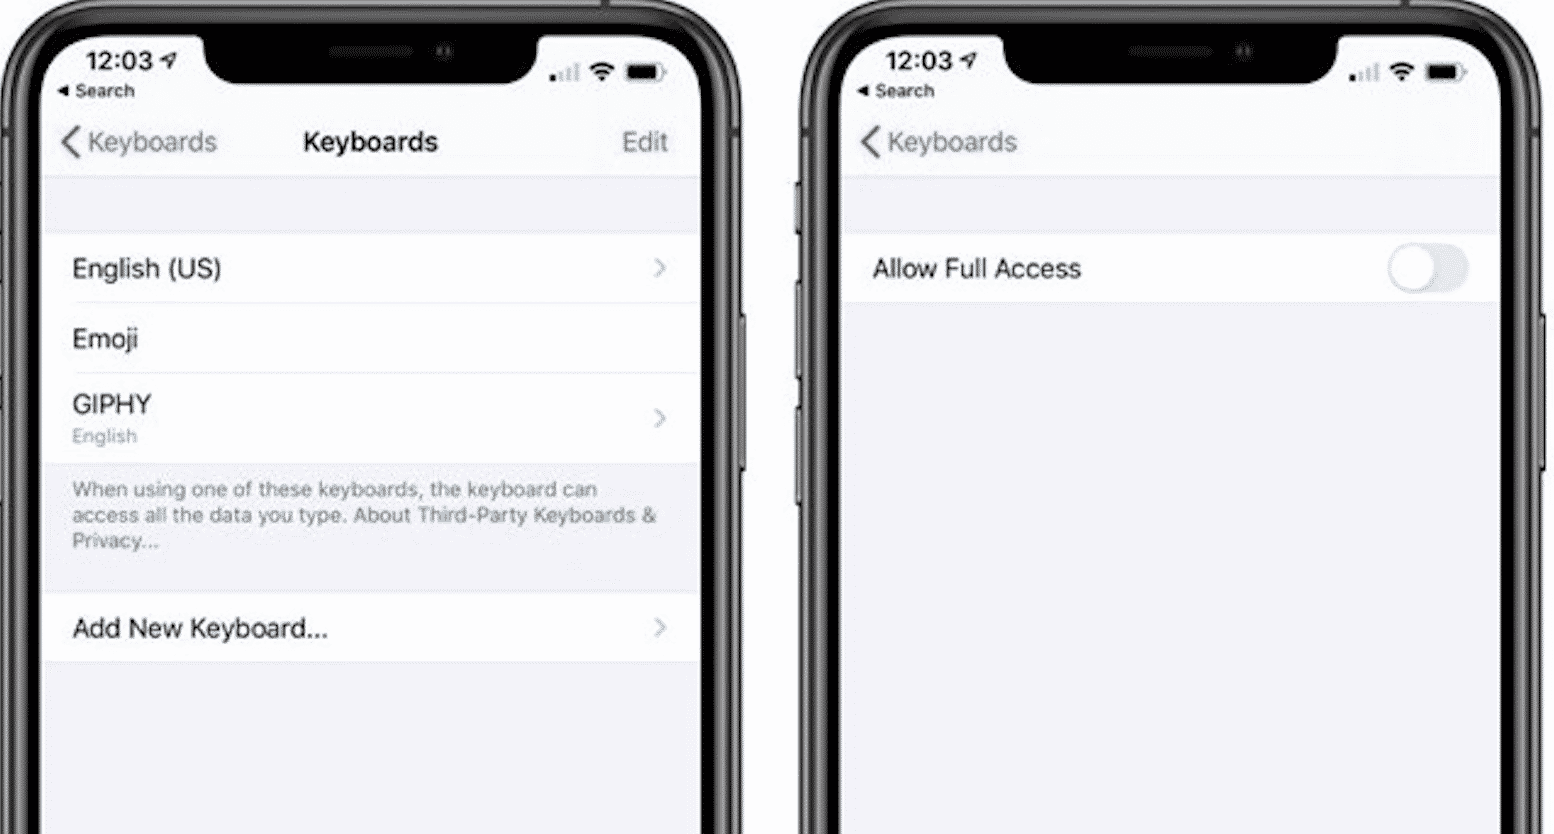 A Bug in iOS 13 Gives Third Party Keyboards Full Access to the iPhone